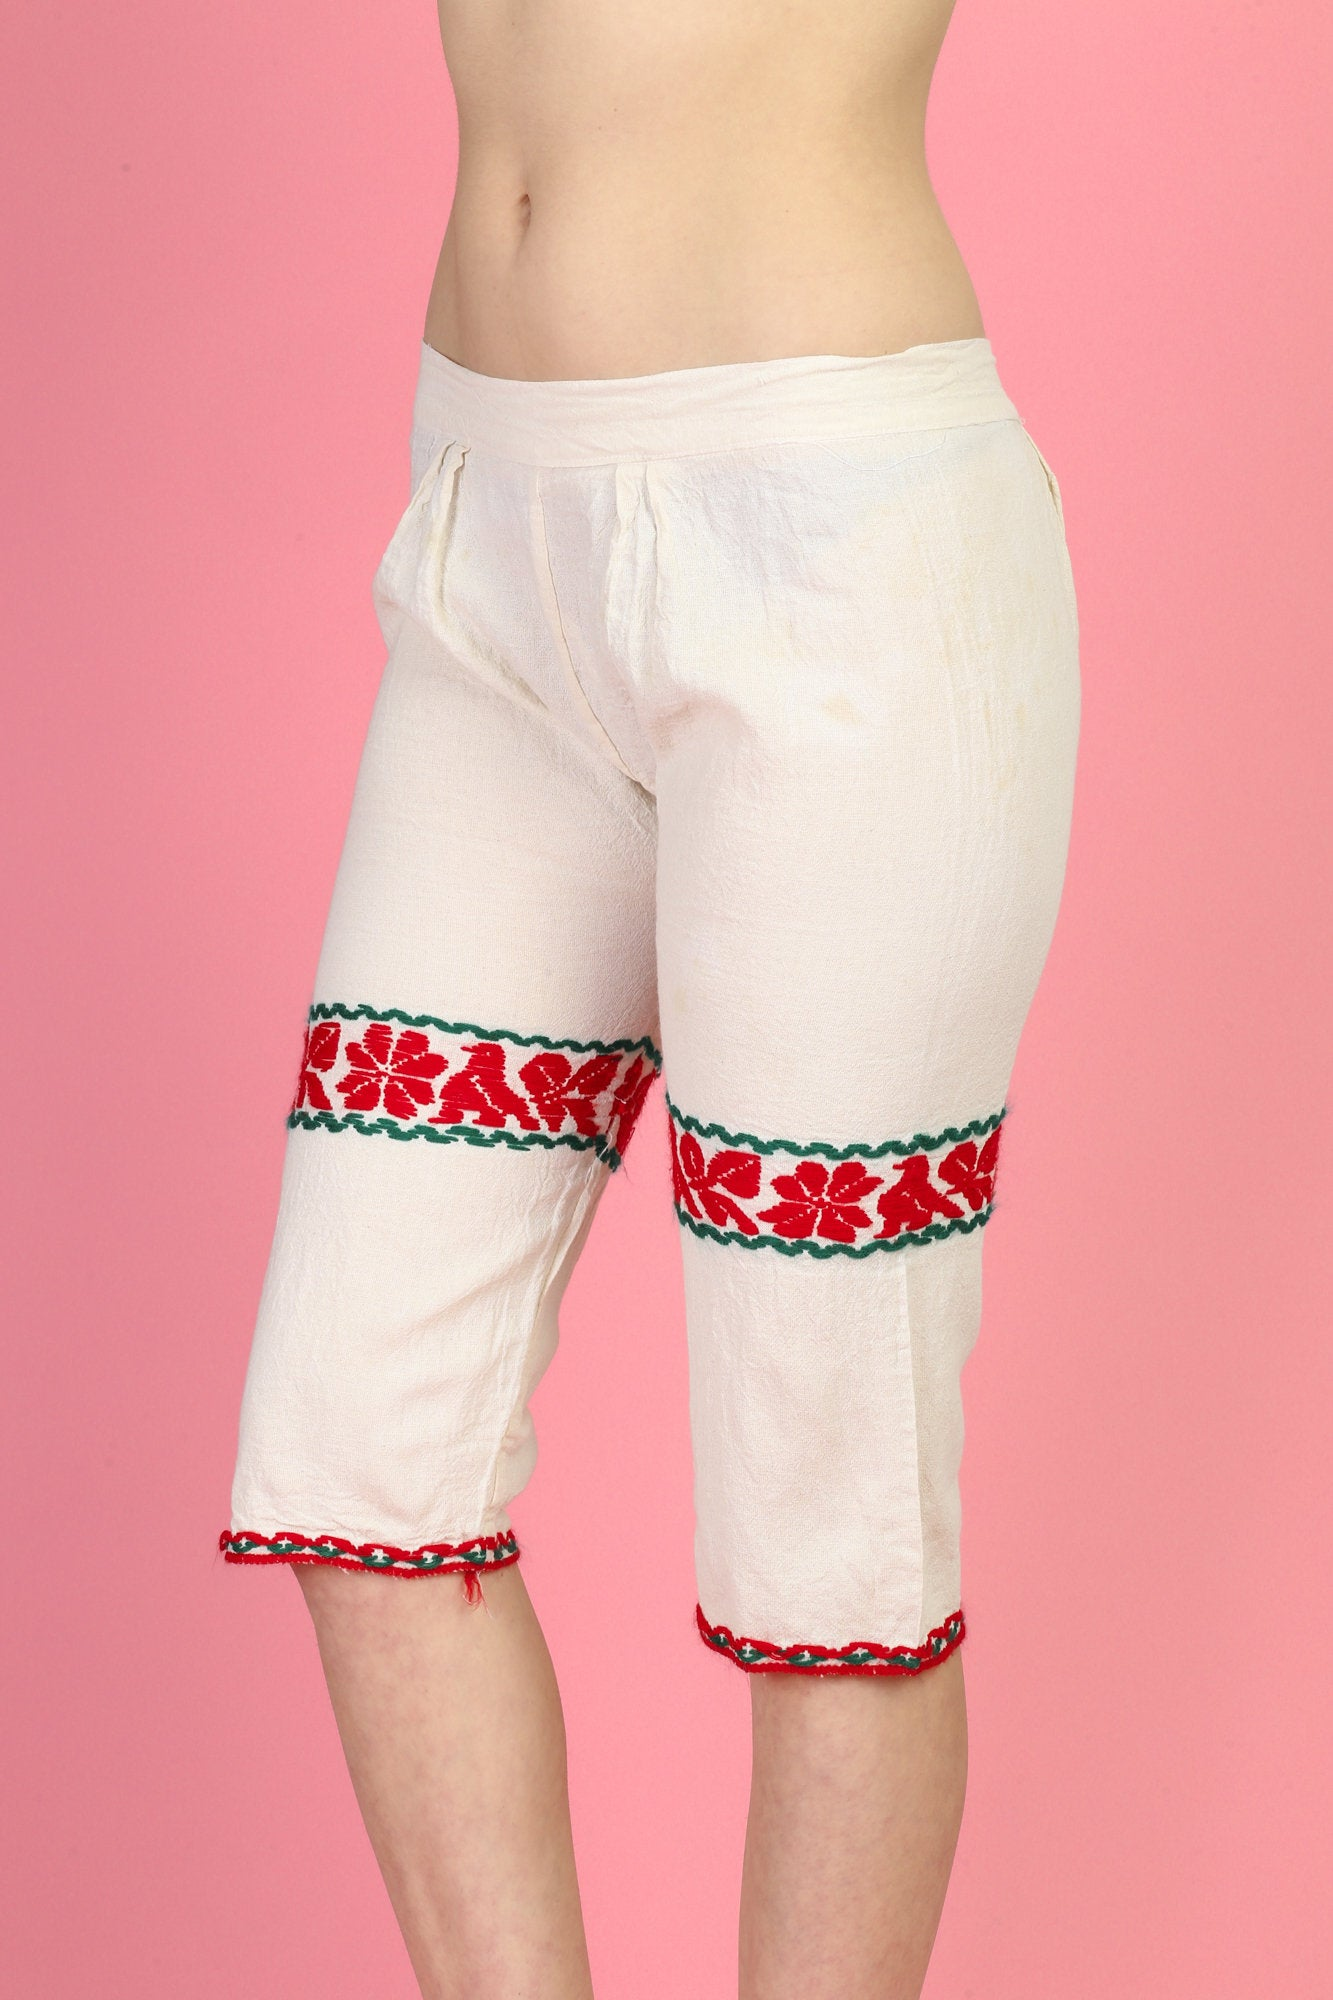 Vintage Mexican Embroidered Shorts - XS to Small